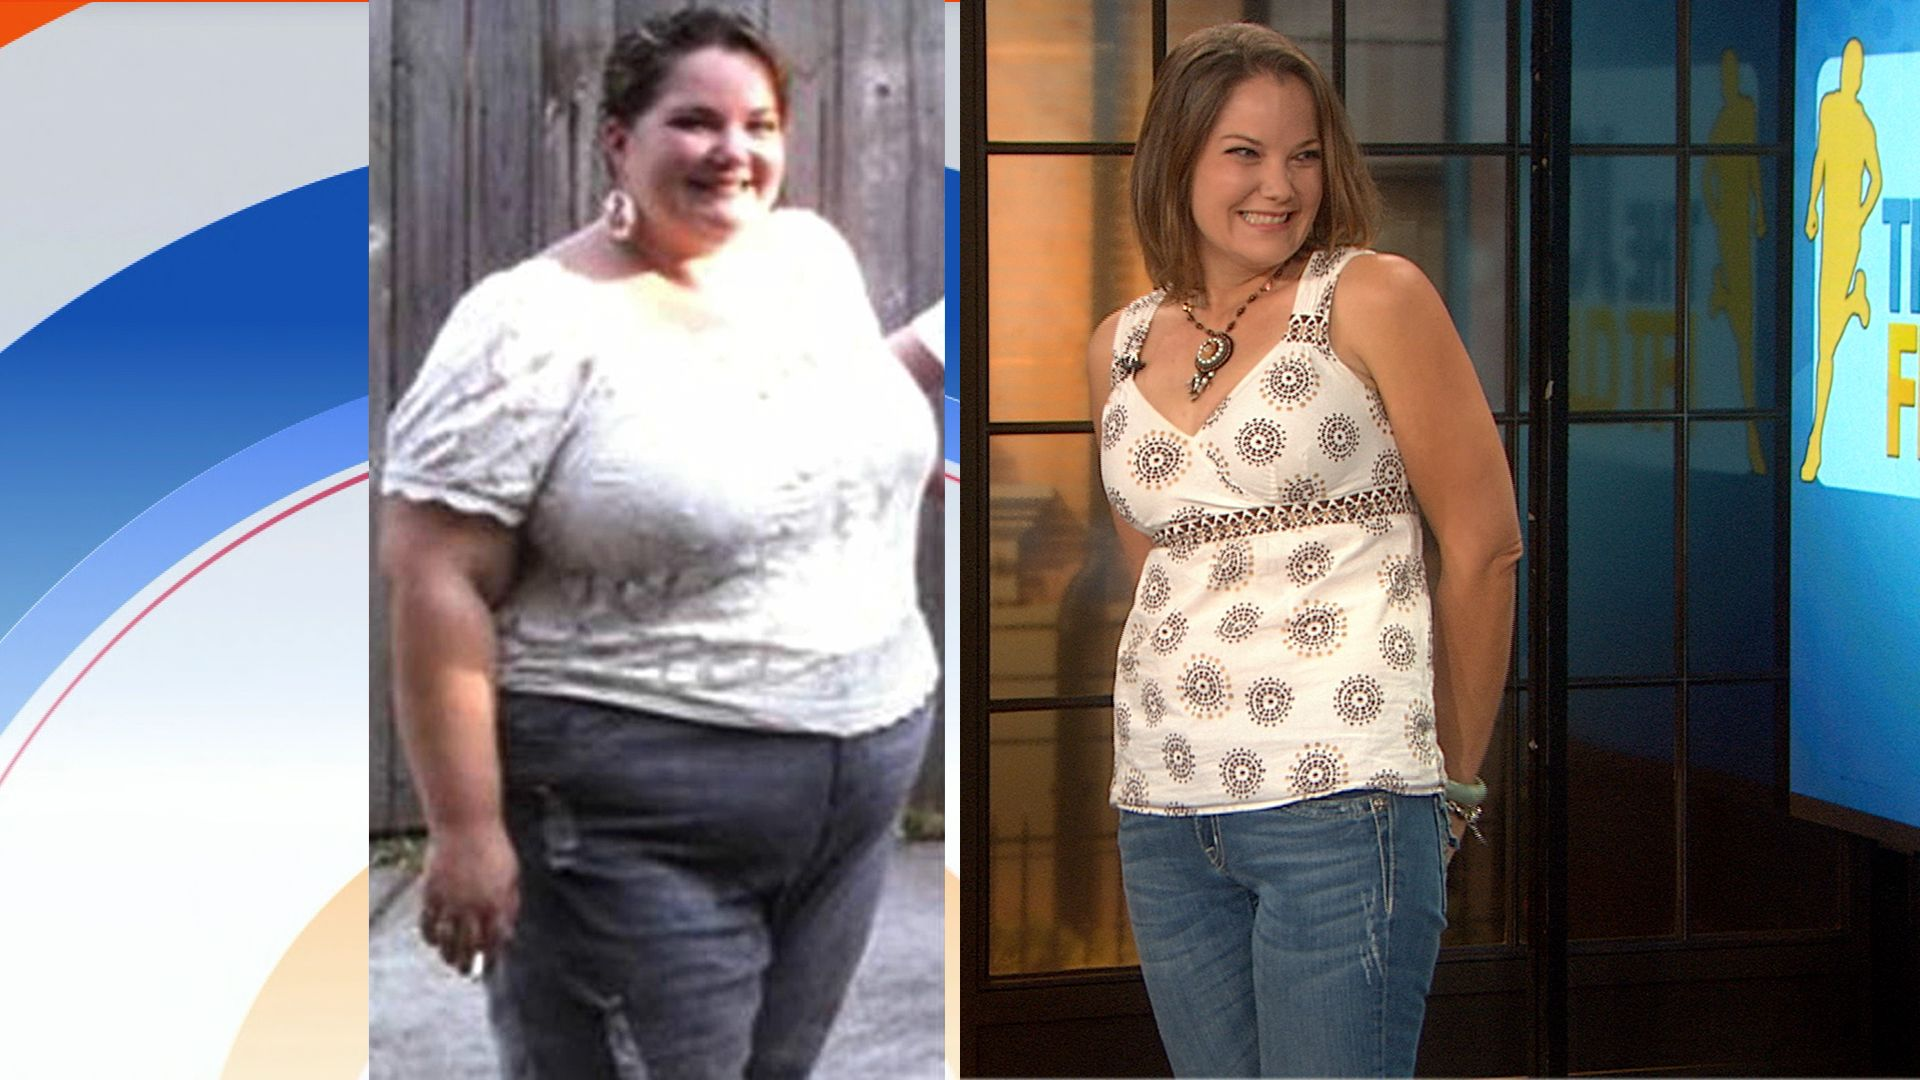 Woman who dropped 171 pounds feels 'illegally wonderful'